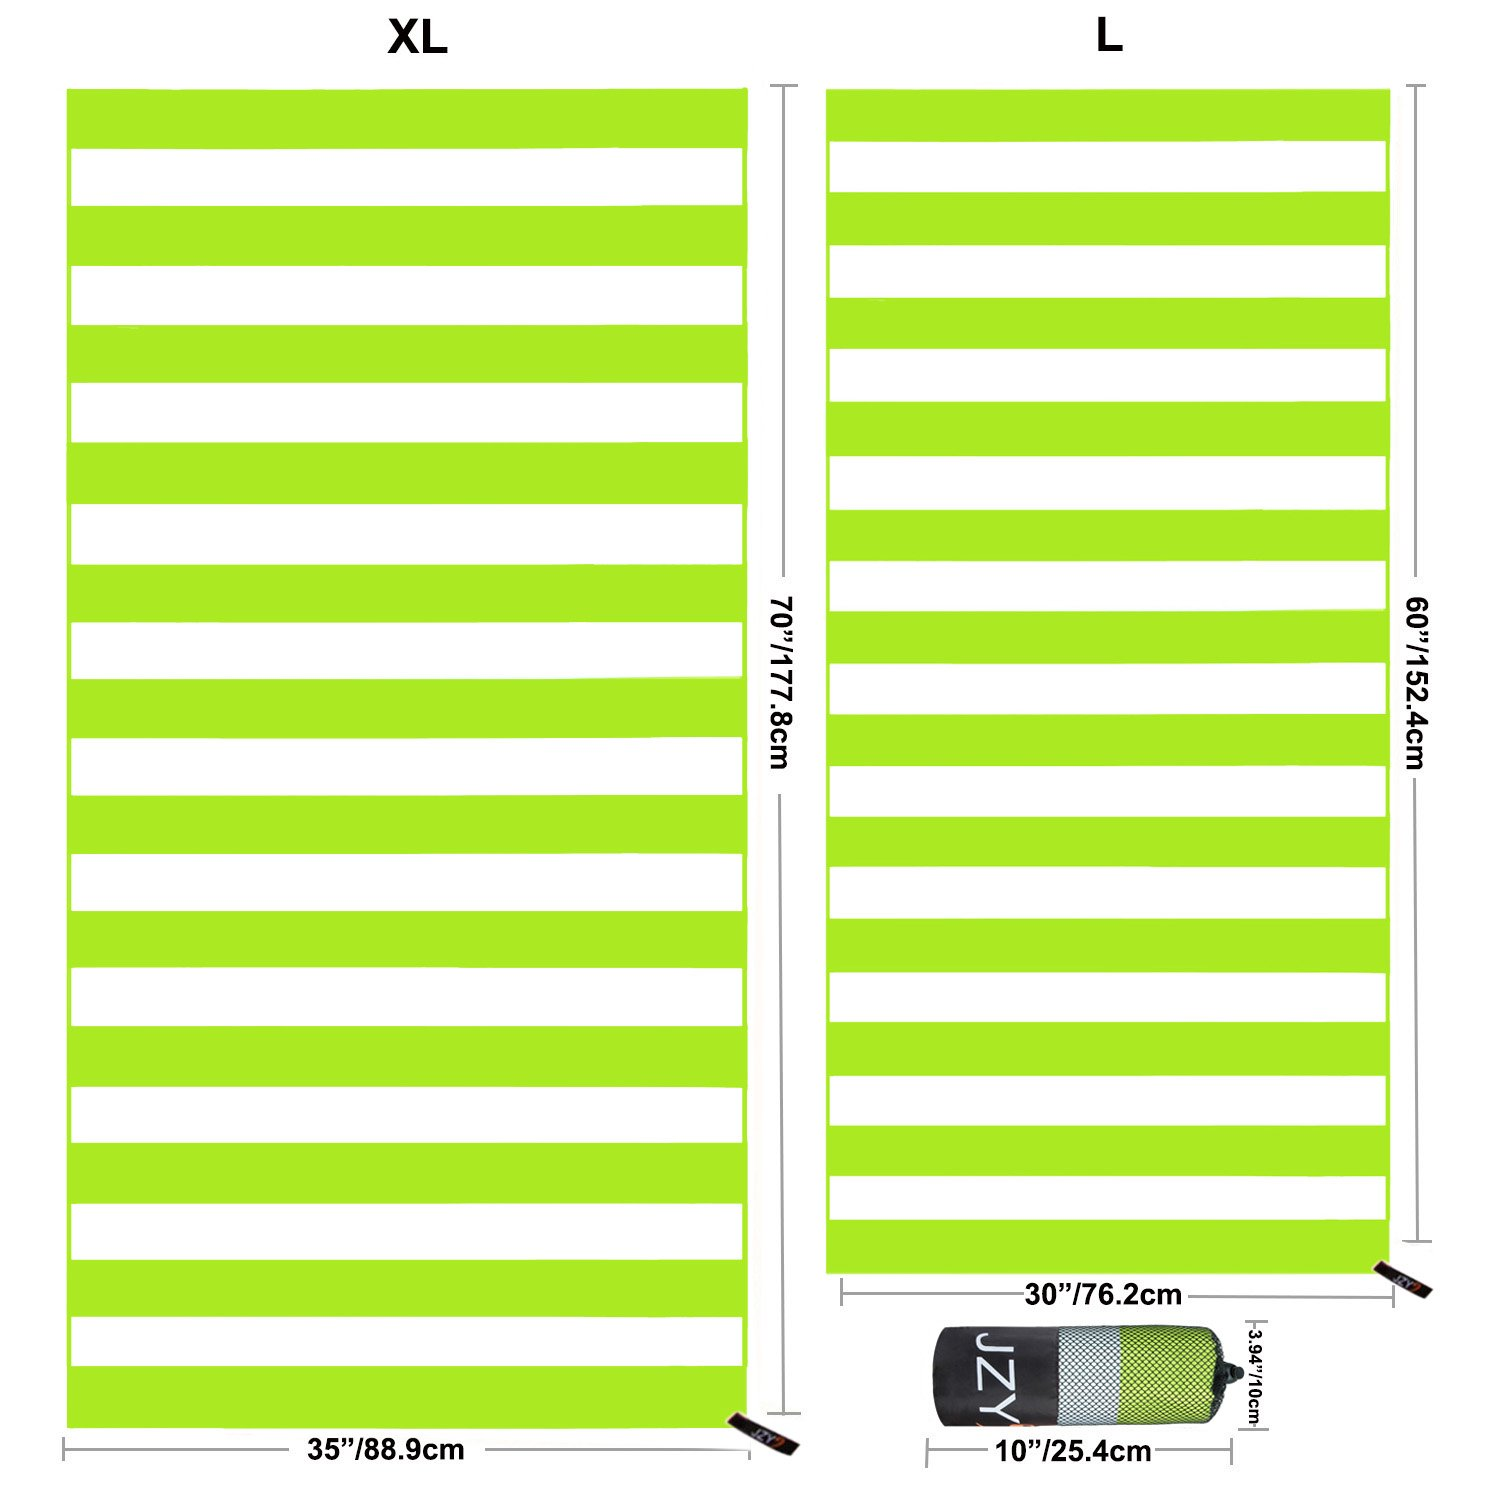 JZY Beach Towel, Microfiber Towel for Swim, Pool, Camping, Outdoors, Sand Free Towel-Lightweight, Quick Dry(Extra Large 70×35, Large 60×30) (Green, Large)